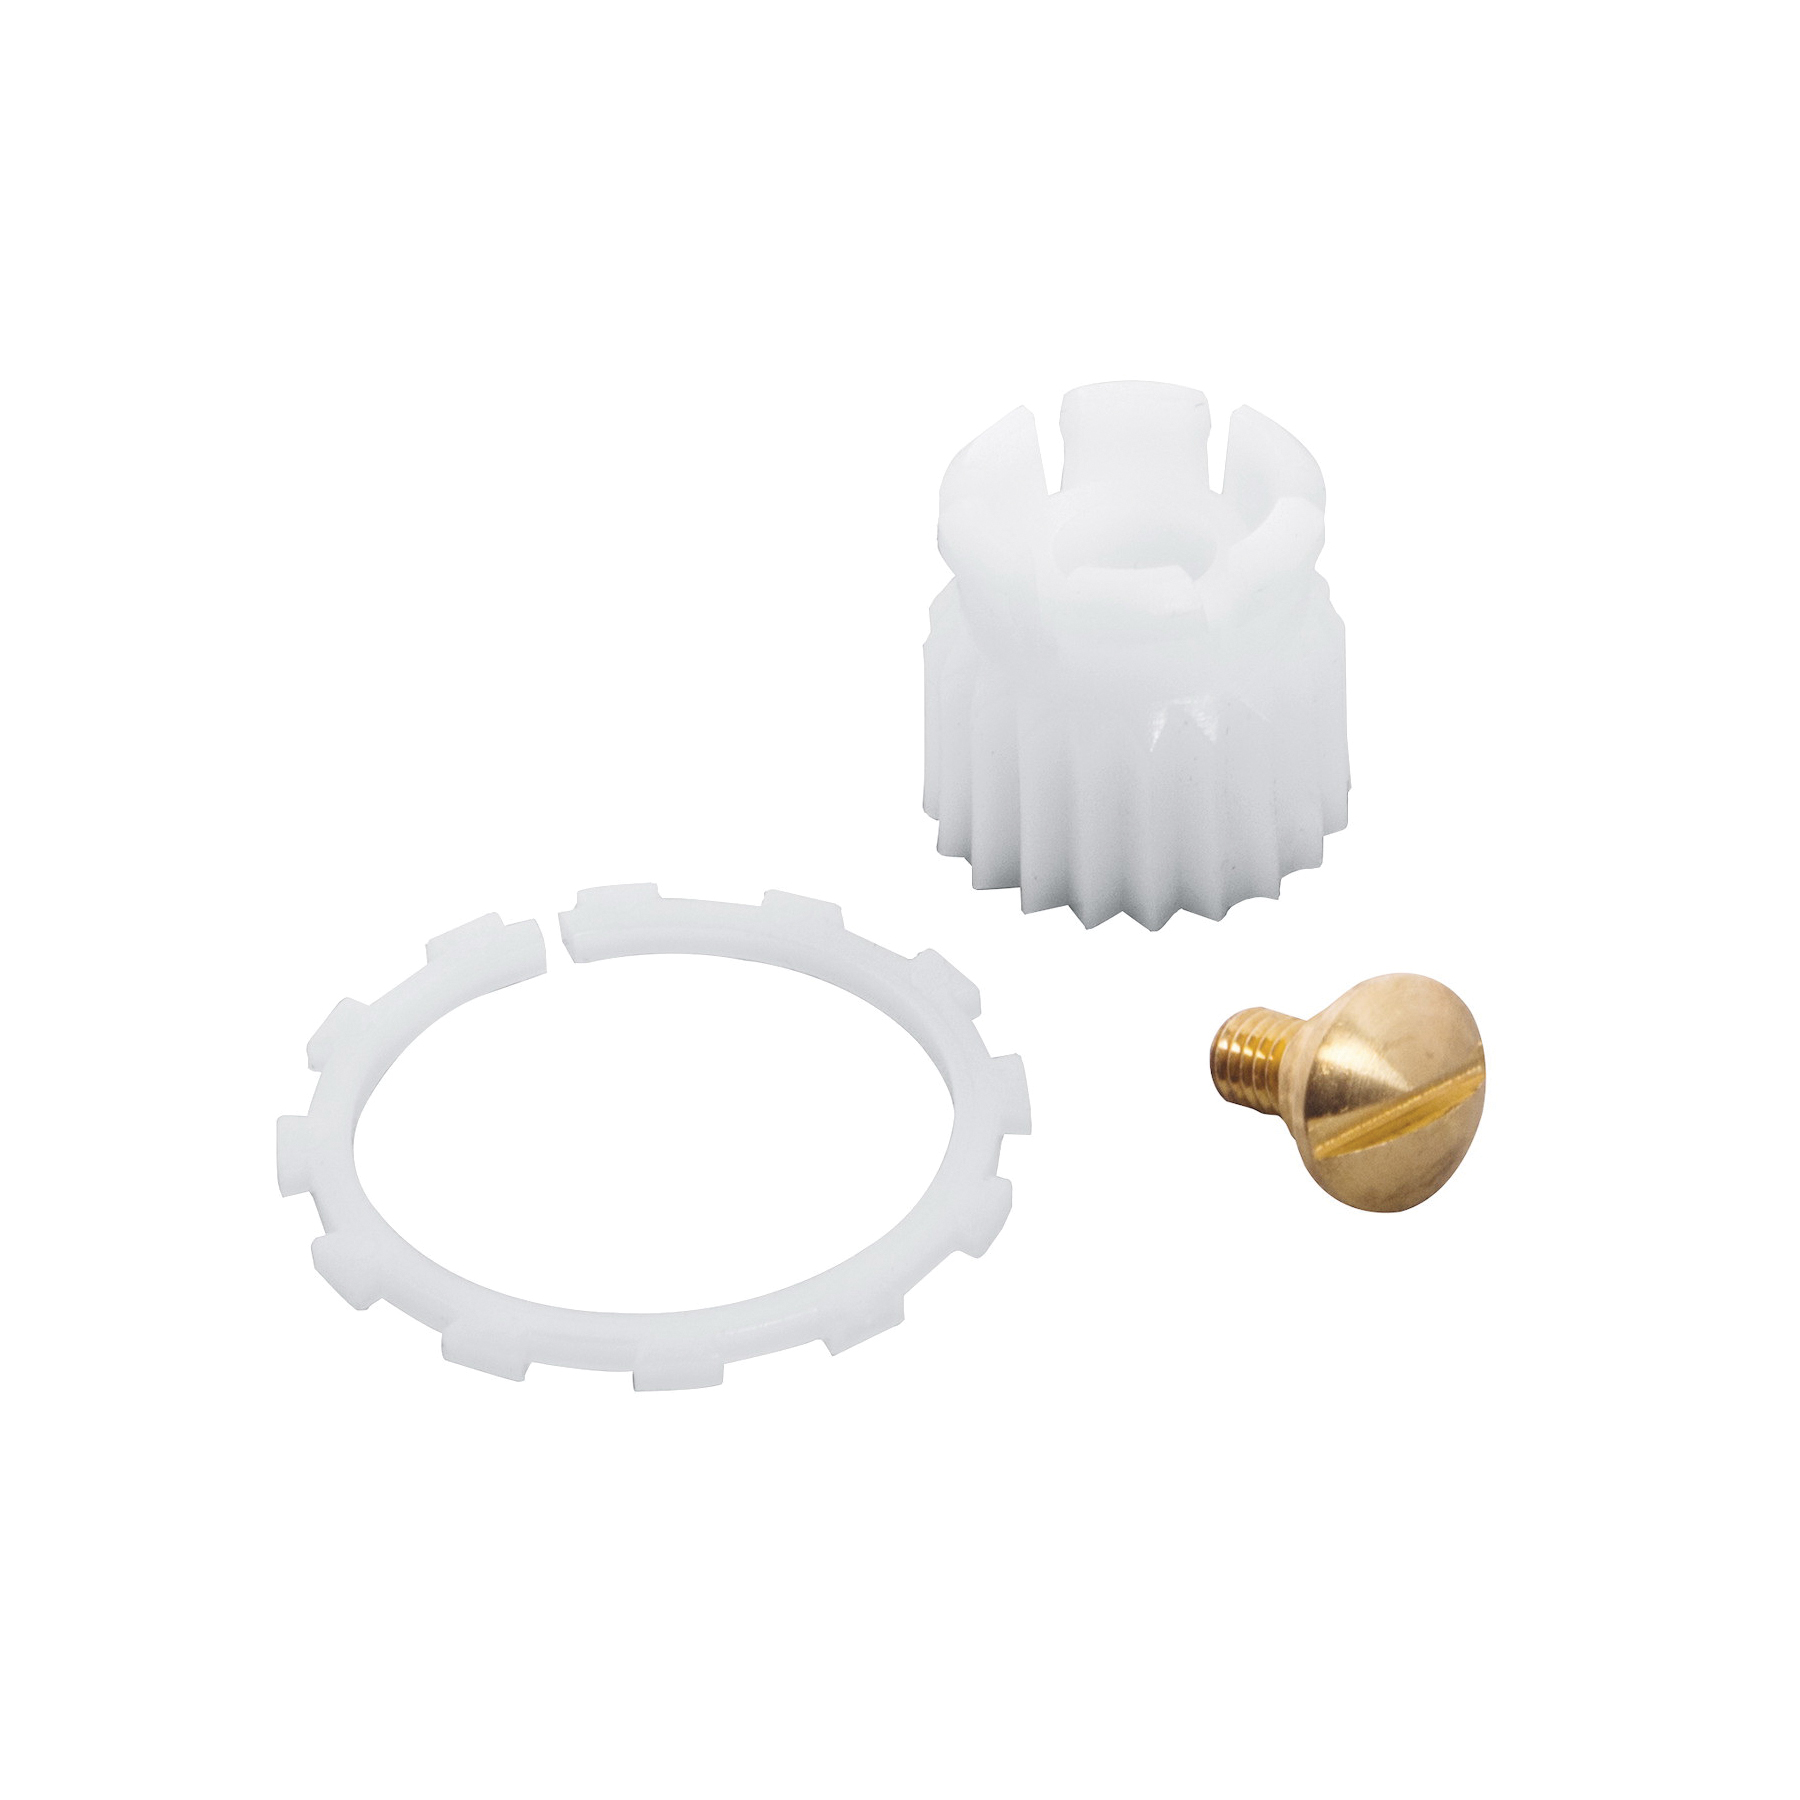 GROHE 45001000 Handle Connecting Set, For Use With TDL Handle Insulator/Adapter, Import